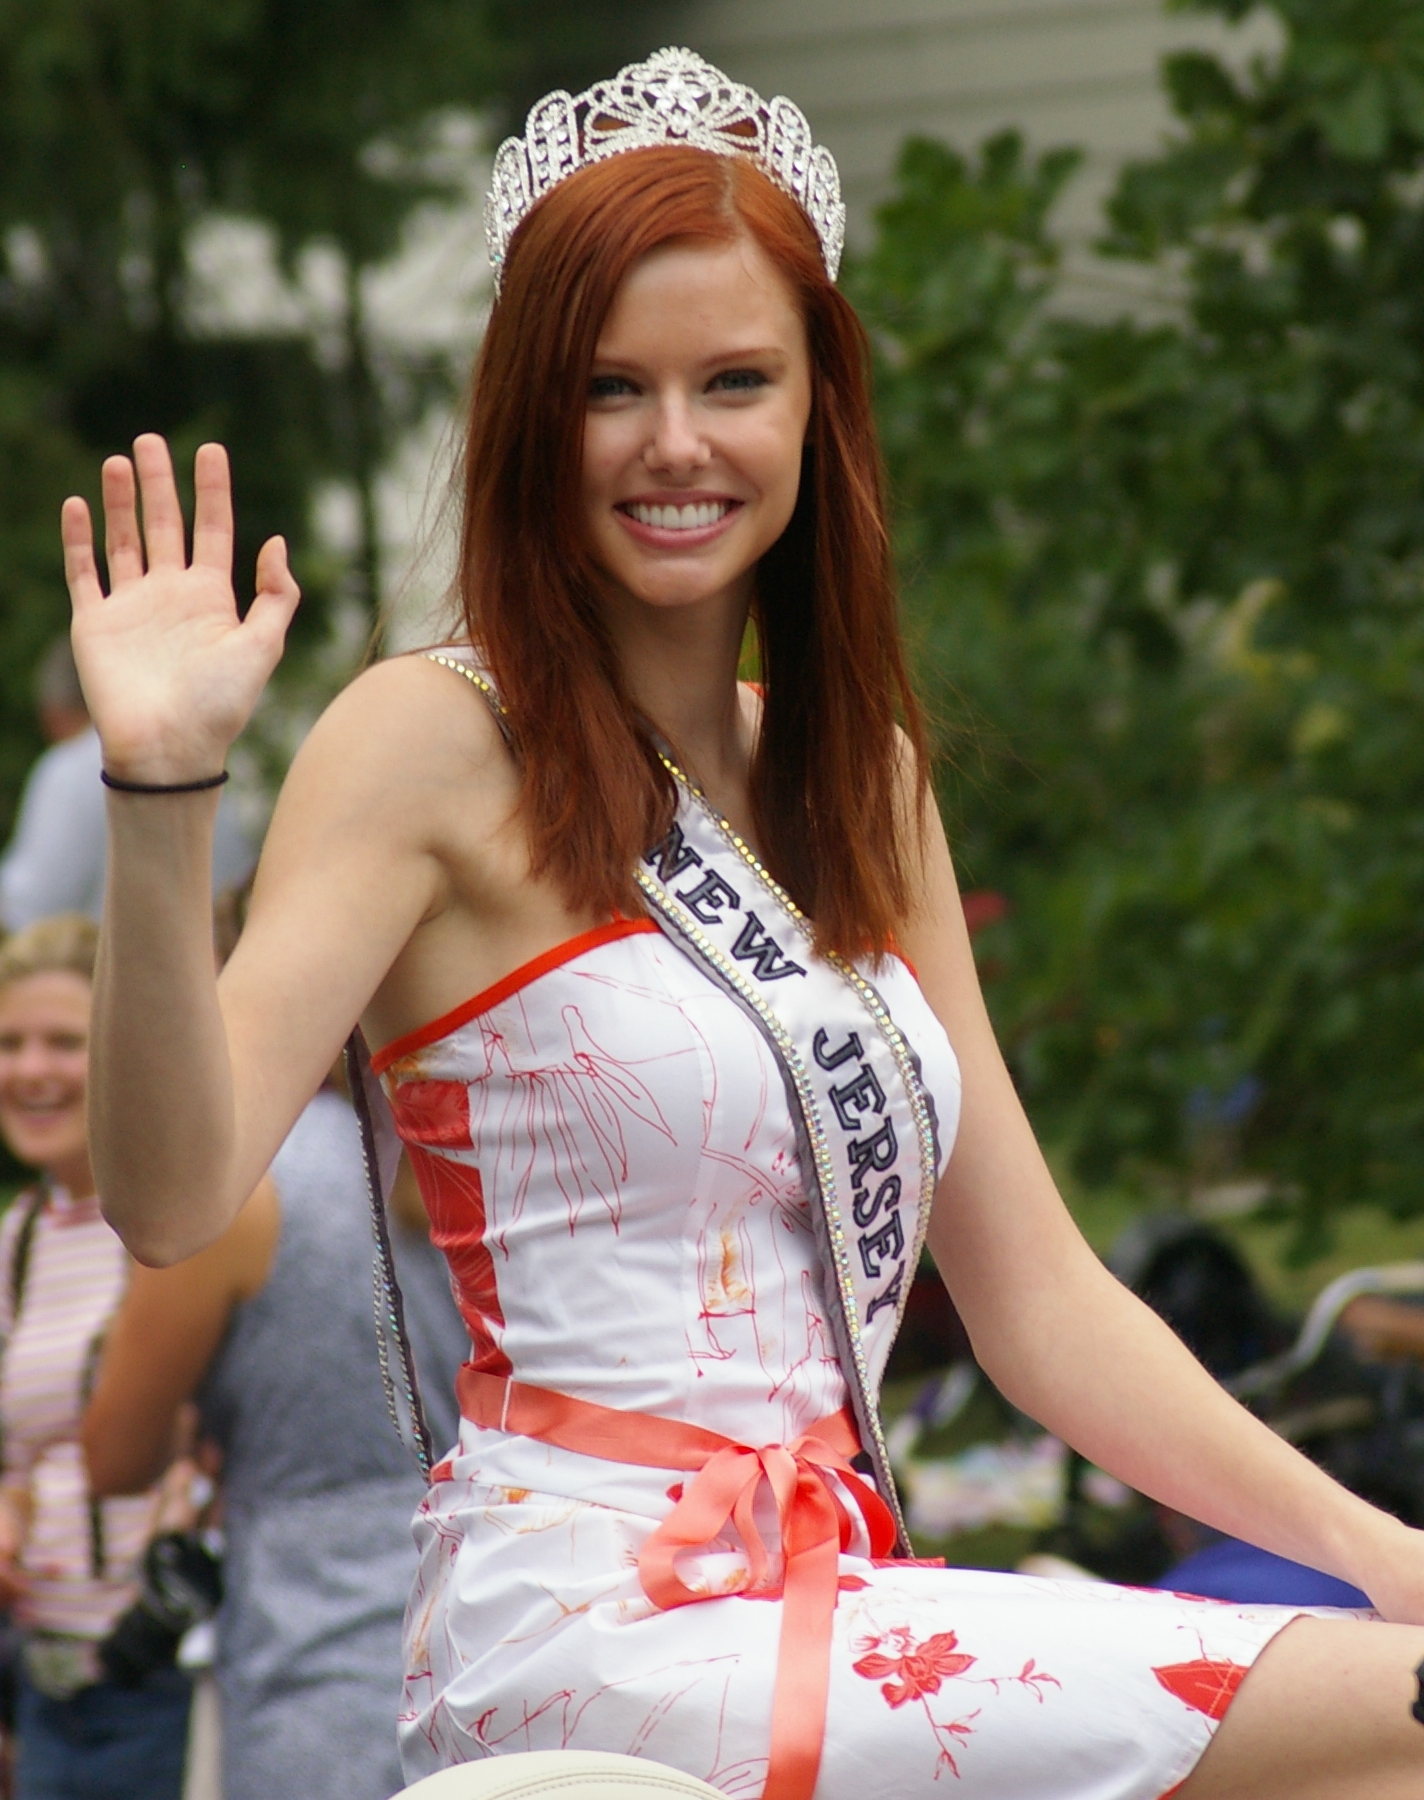 Alyssa Campanella as Miss New Jersey Teen USA.